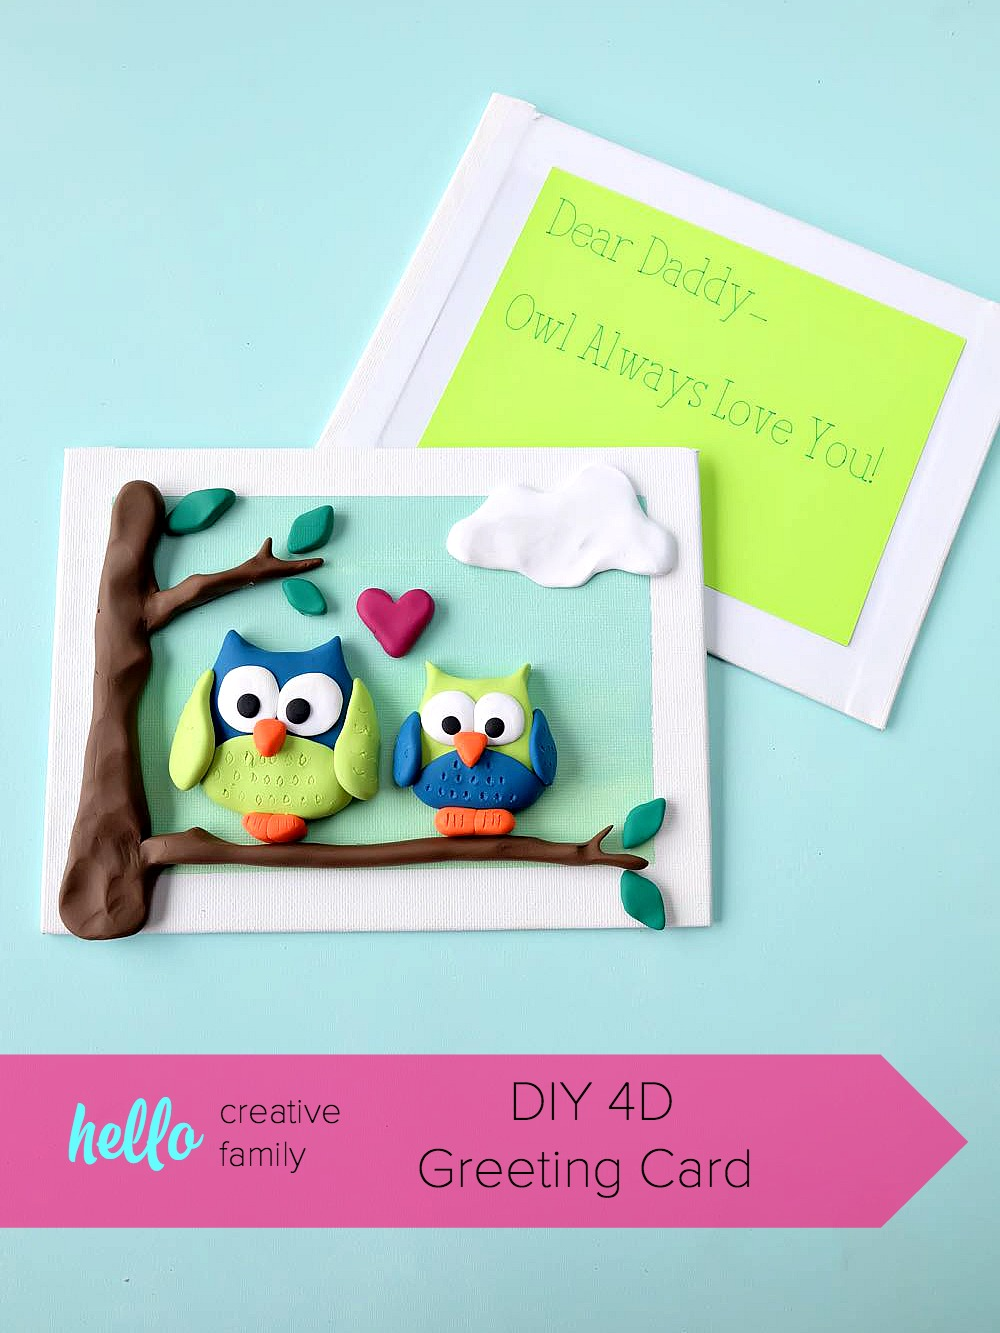 Diy 4d greeting card hello creative family make an adorable 4d greeting card using polymer clay and a dollar store artist canvas kristyandbryce Gallery